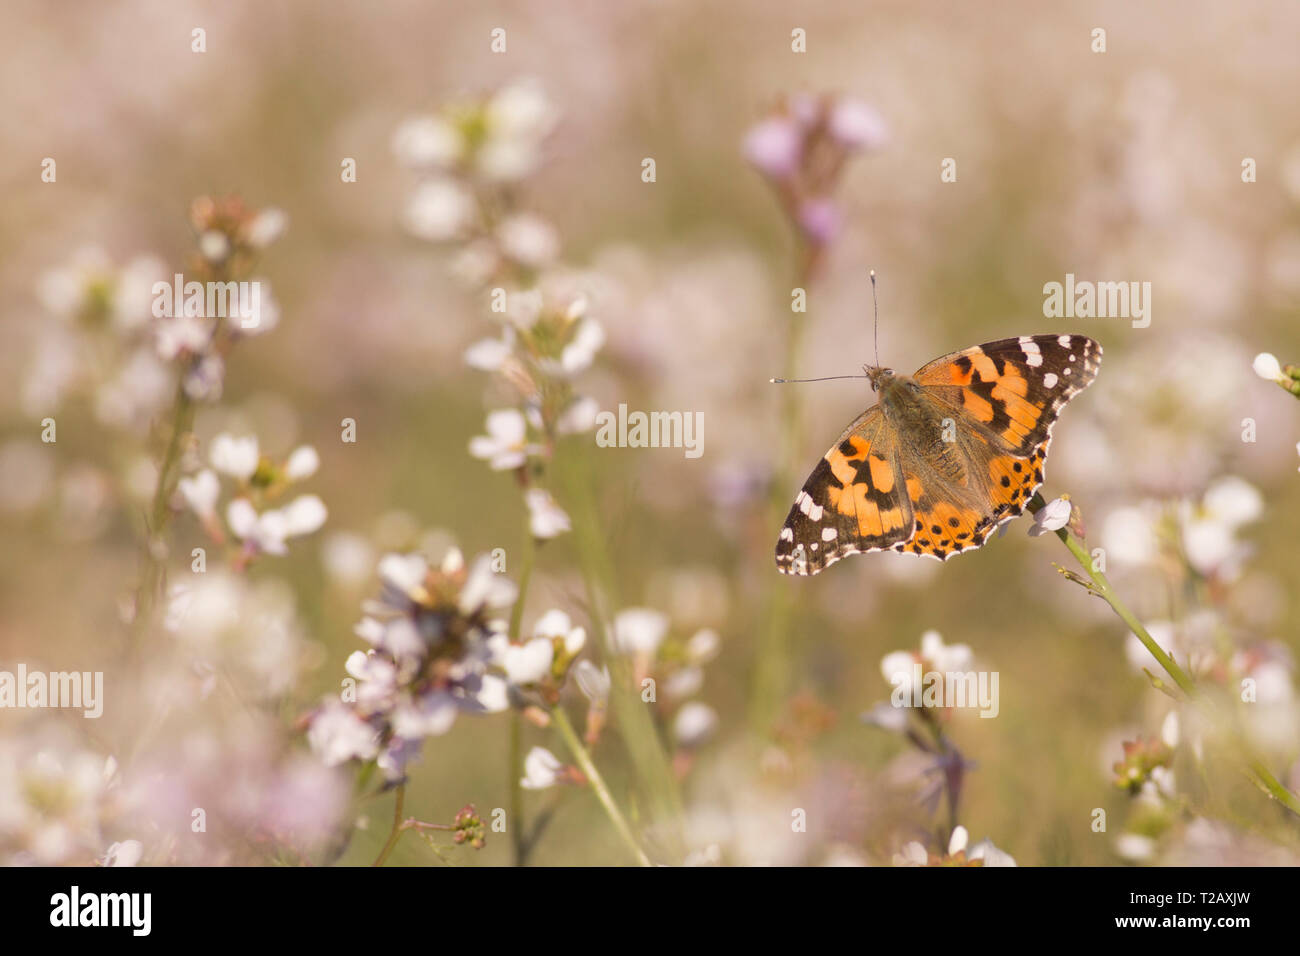 Painted lady (Vanessa cardui) butterfly feeding. This butterfly is found in Europe, northern Africa, and western Asia. Photographed in Israel, in Marc Stock Photo